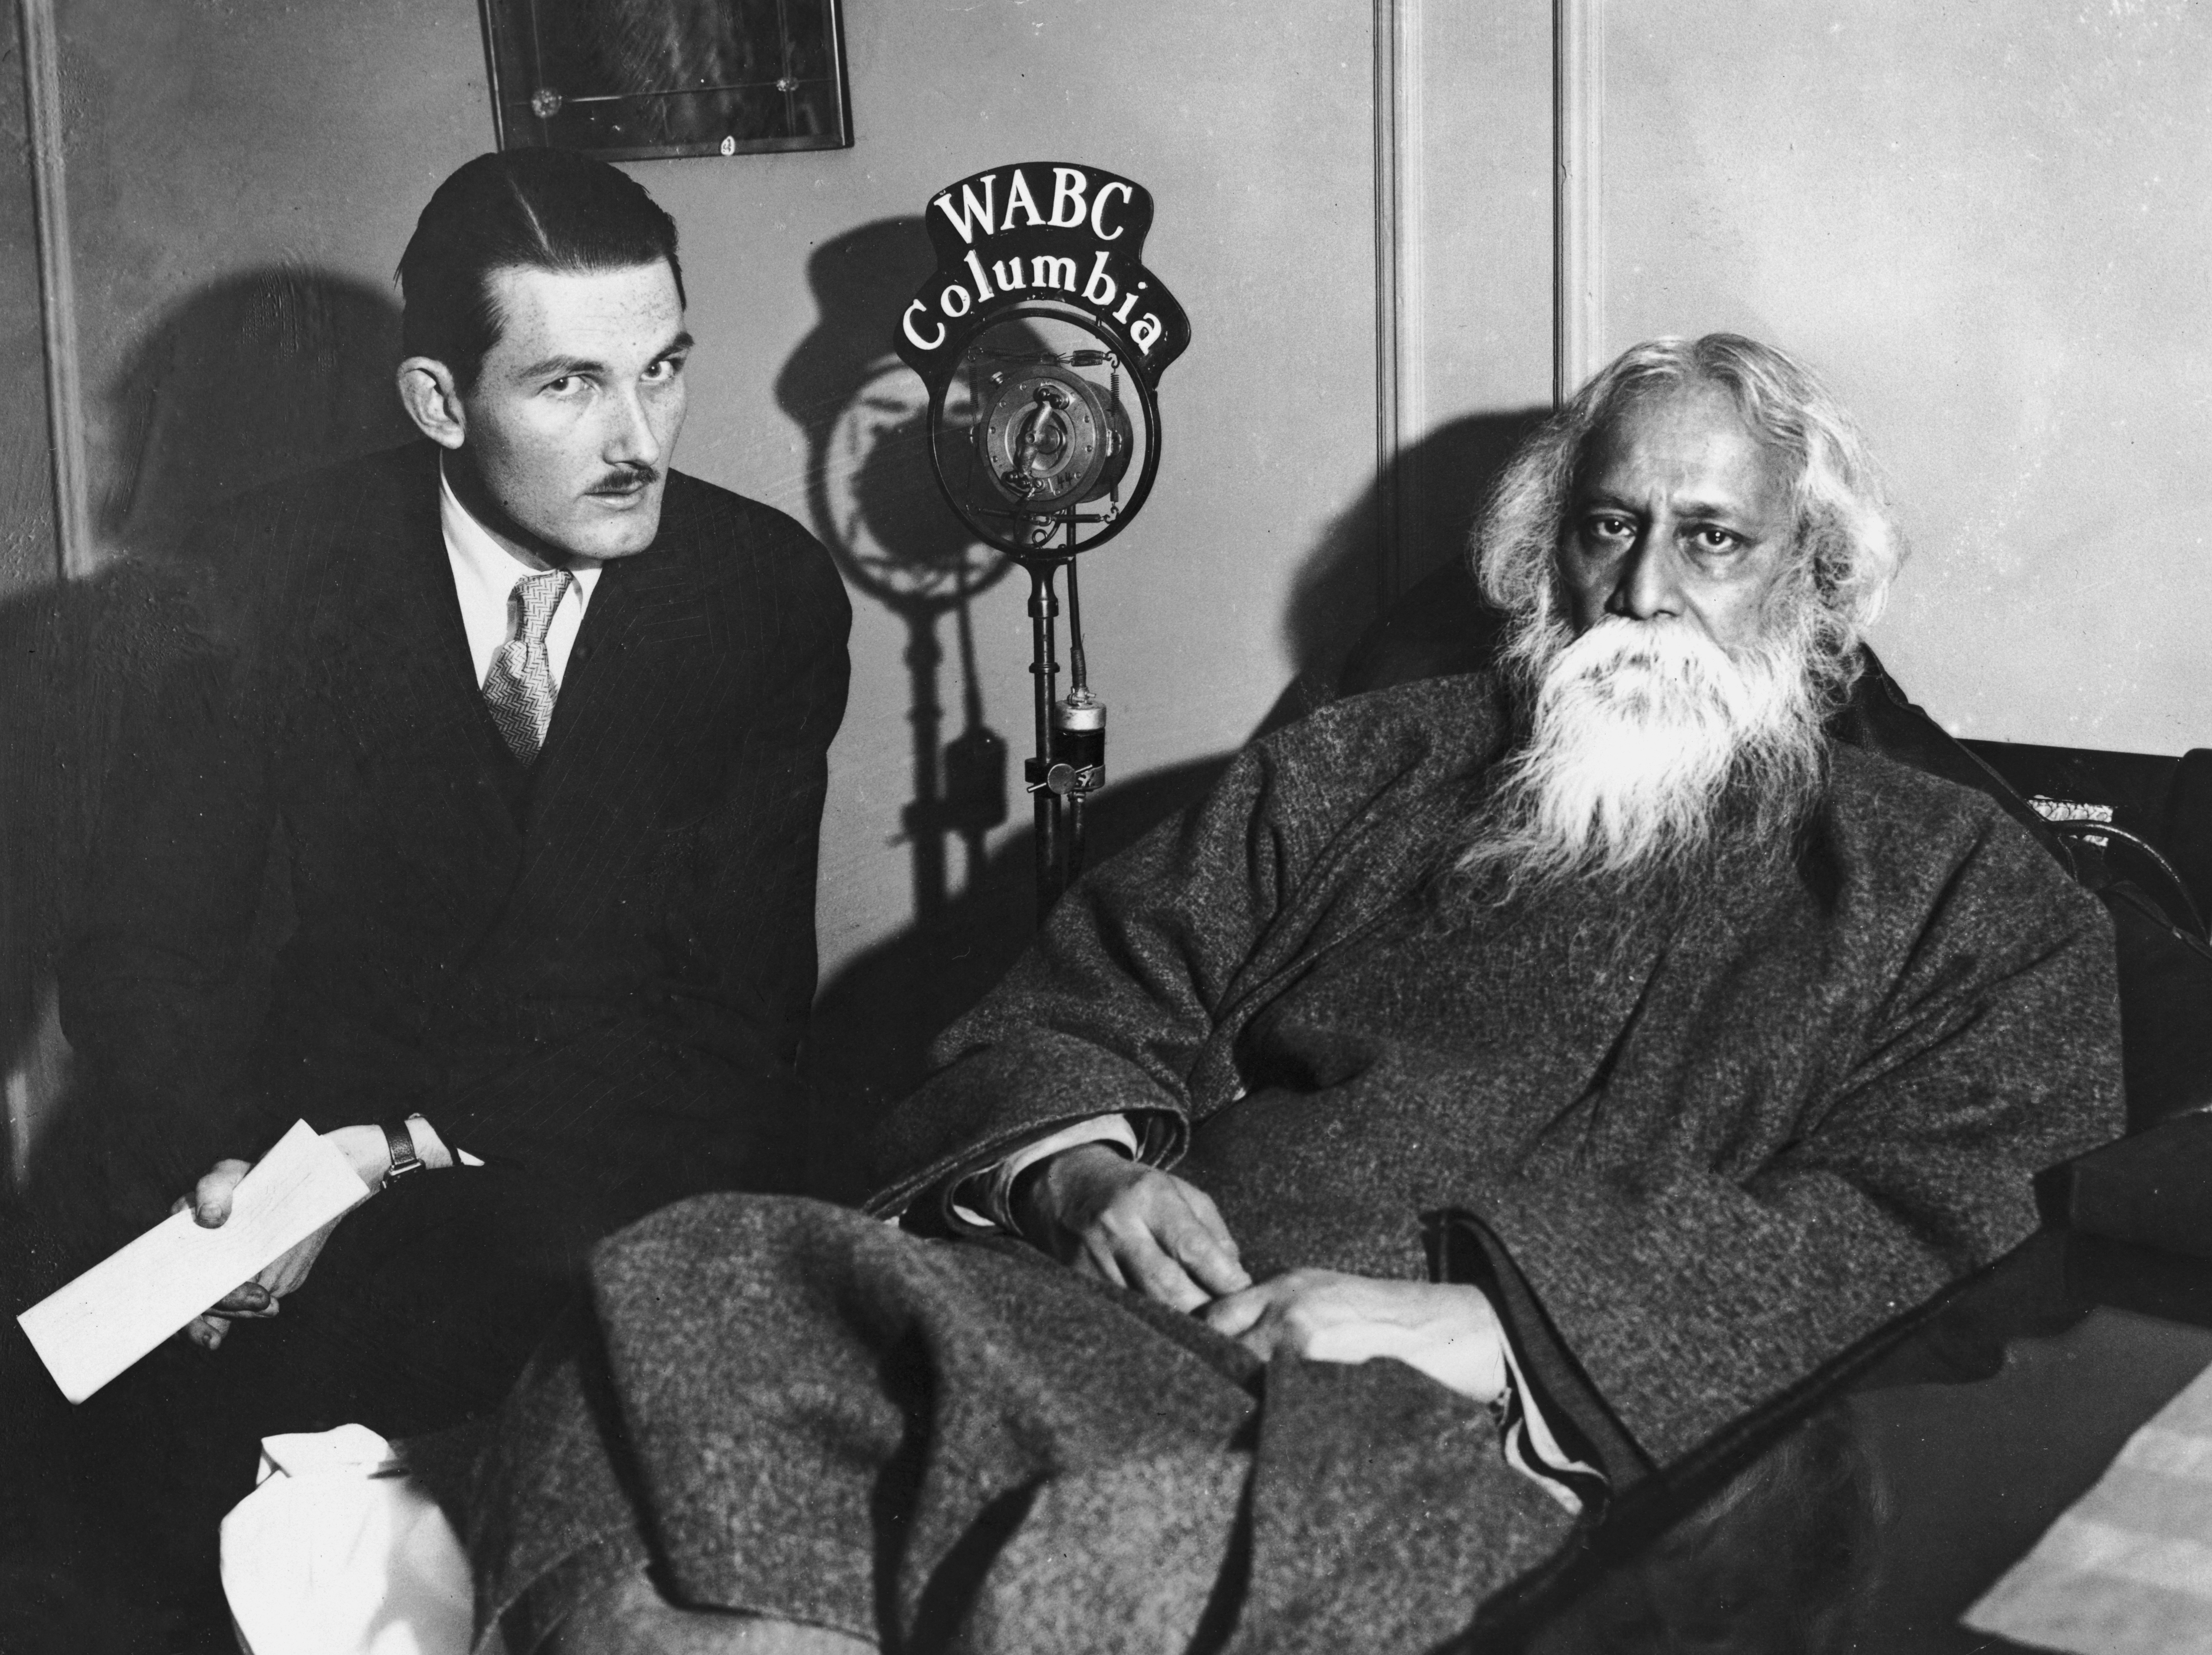 essay on rabindranath tagore essay on rabindranath tagore in bengali nobelprize org essay of elephant essay on elephant dies ip